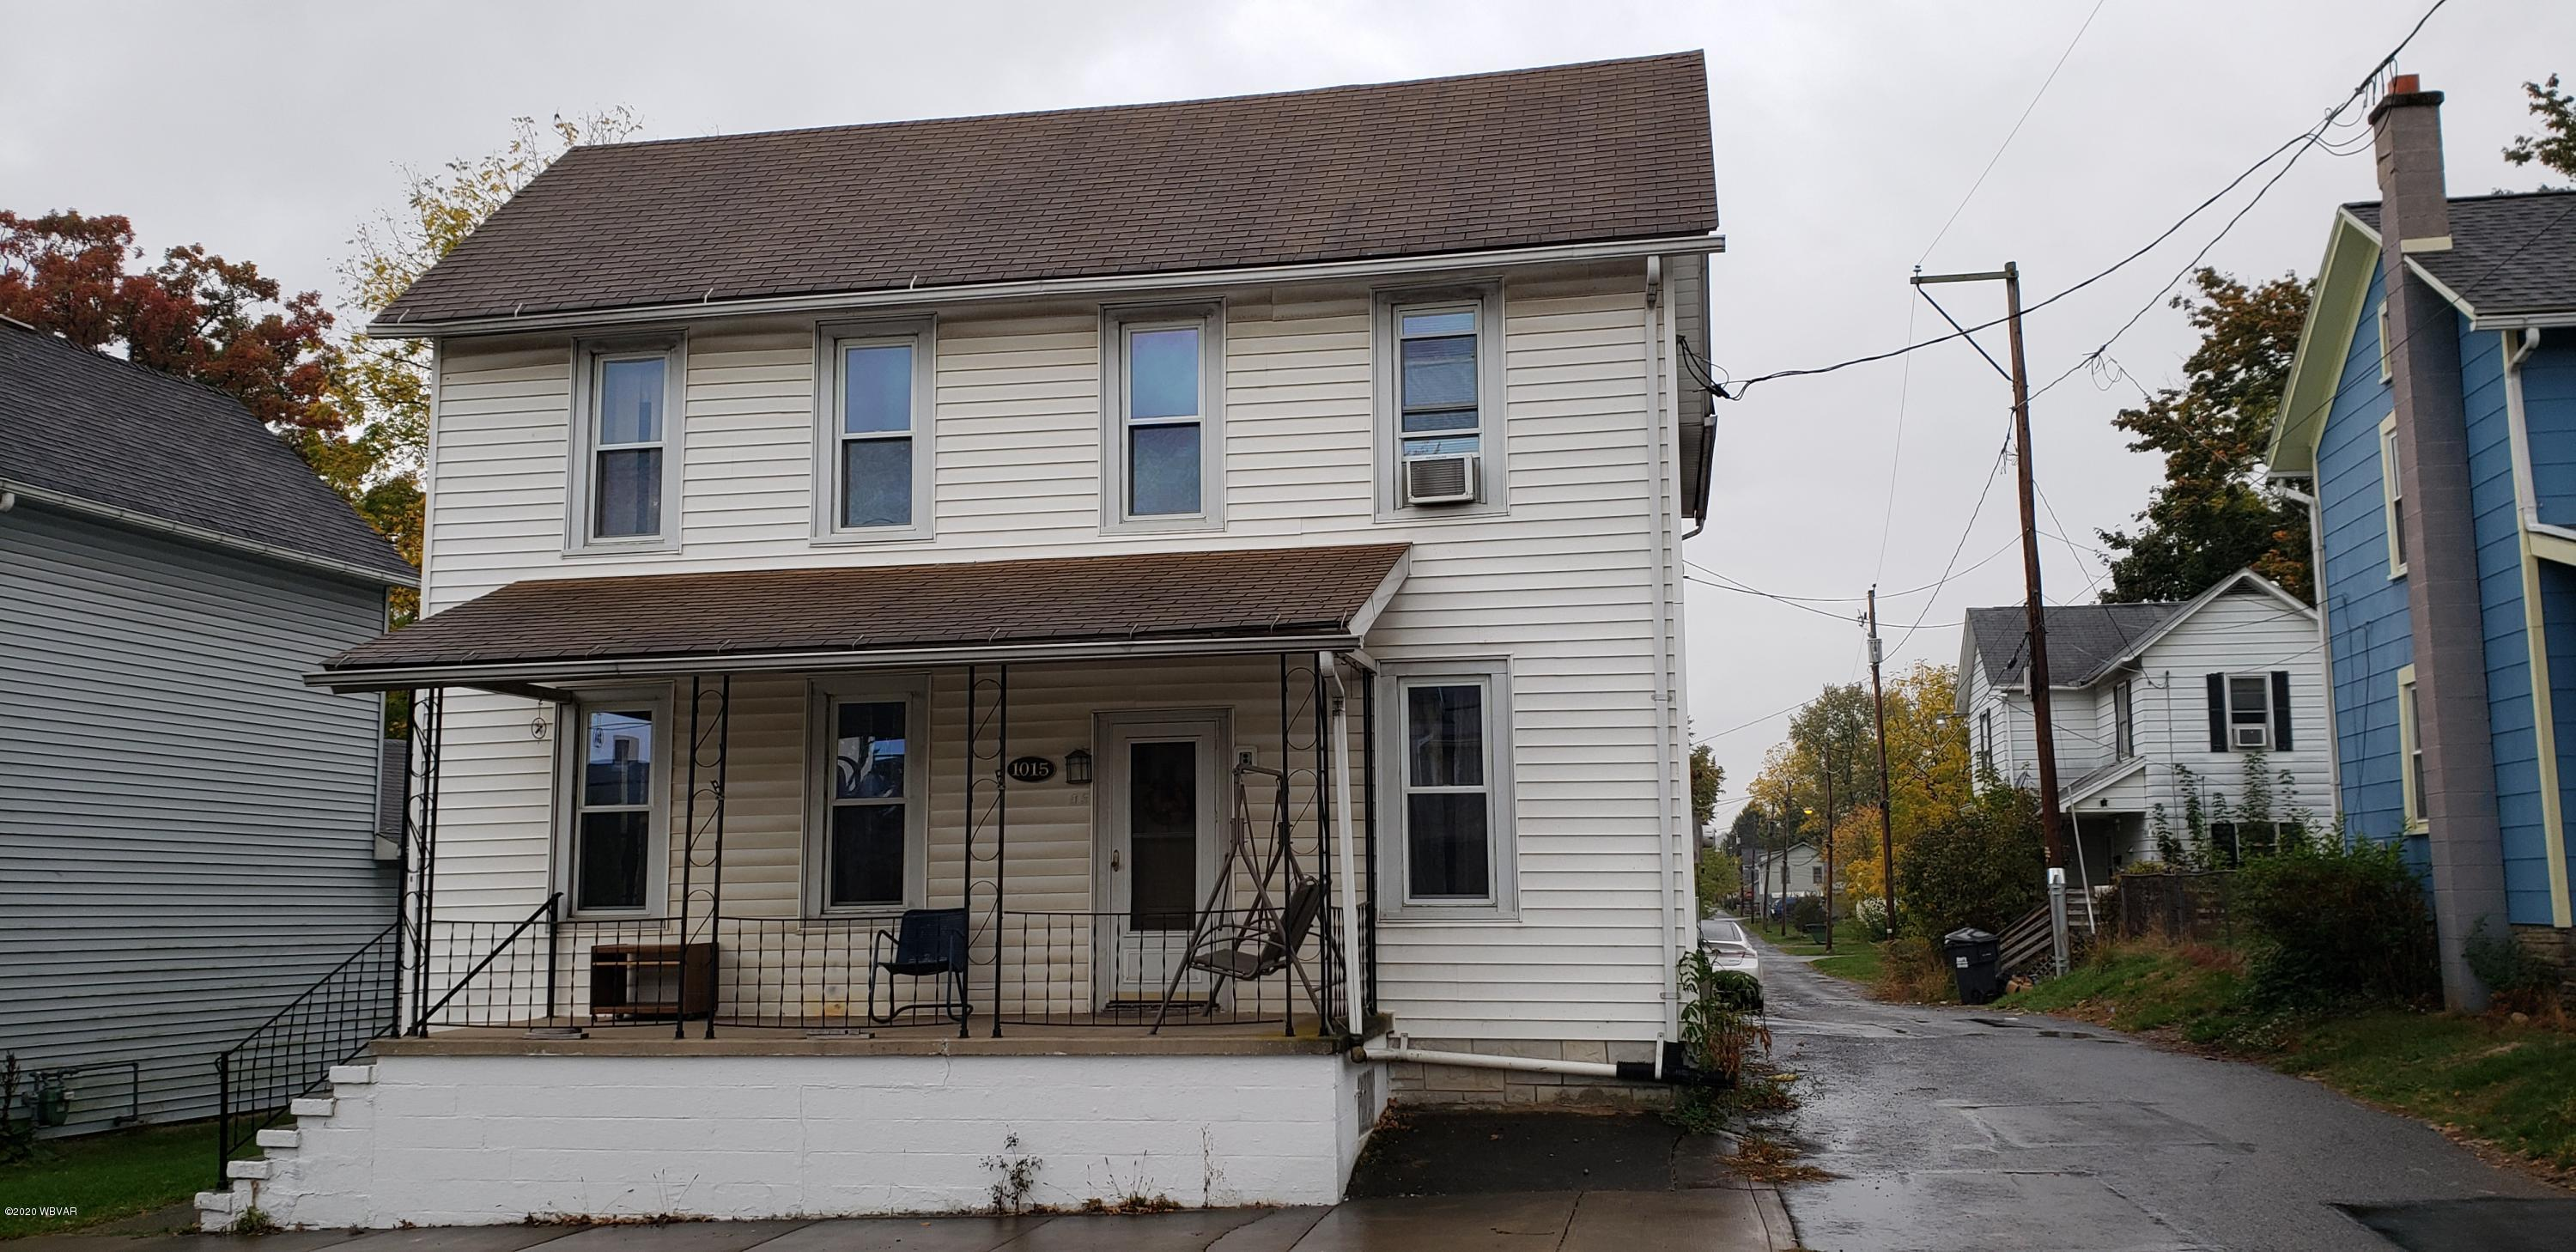 1015 RAILWAY STREET, Williamsport, PA 17701, 4 Bedrooms Bedrooms, ,1.5 BathroomsBathrooms,Residential,For sale,RAILWAY,WB-91373